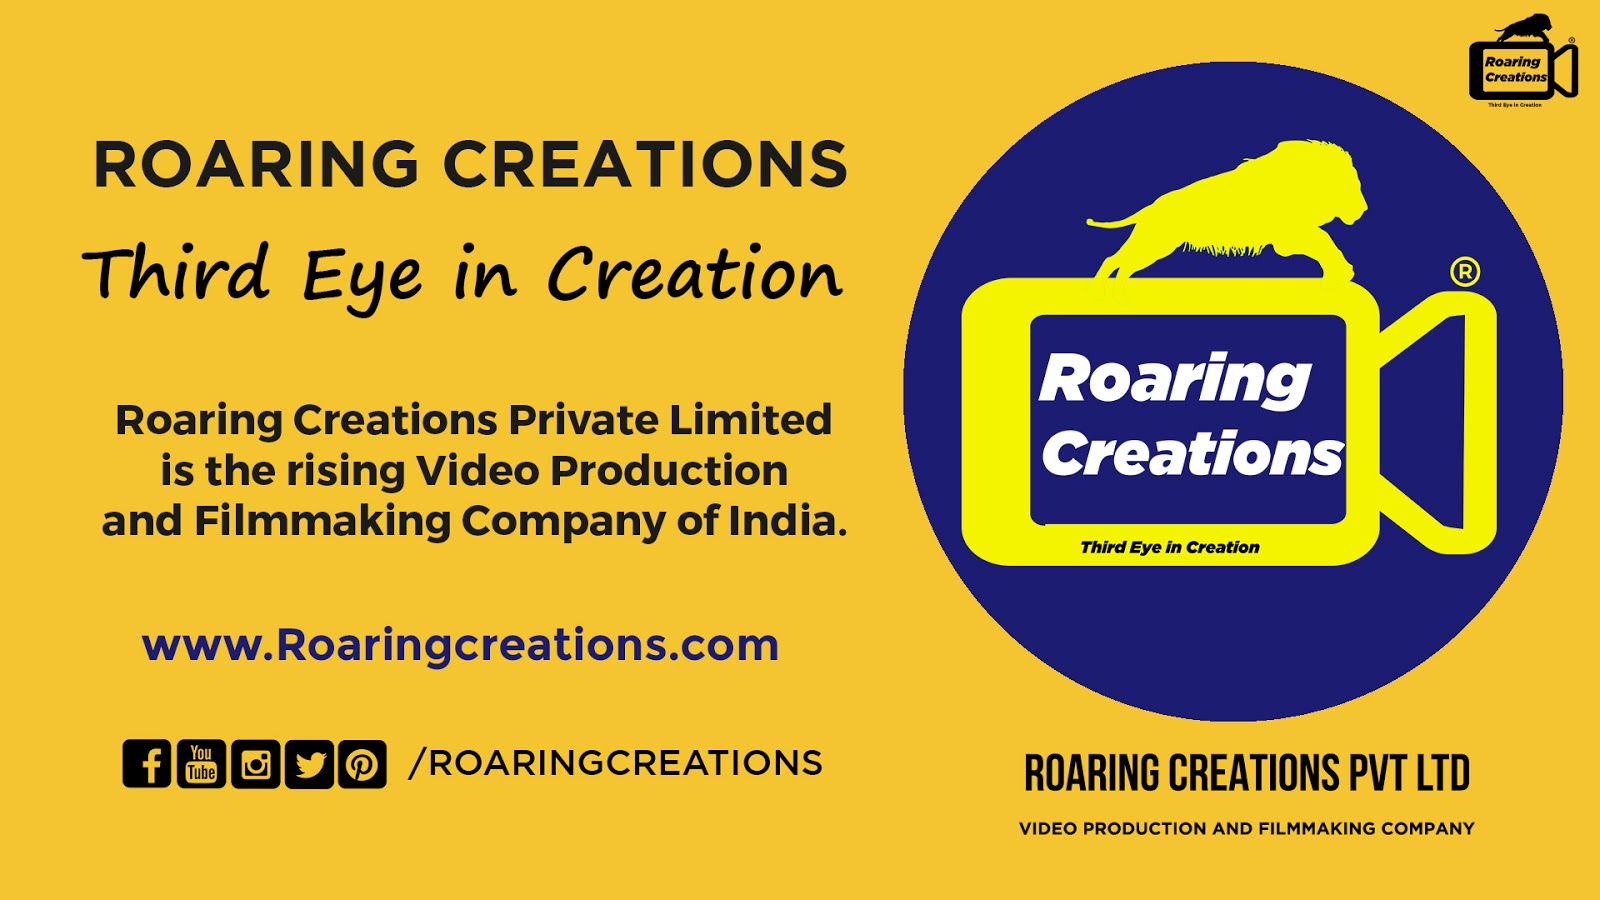 Roaring Creations - Third Eye in Creation®